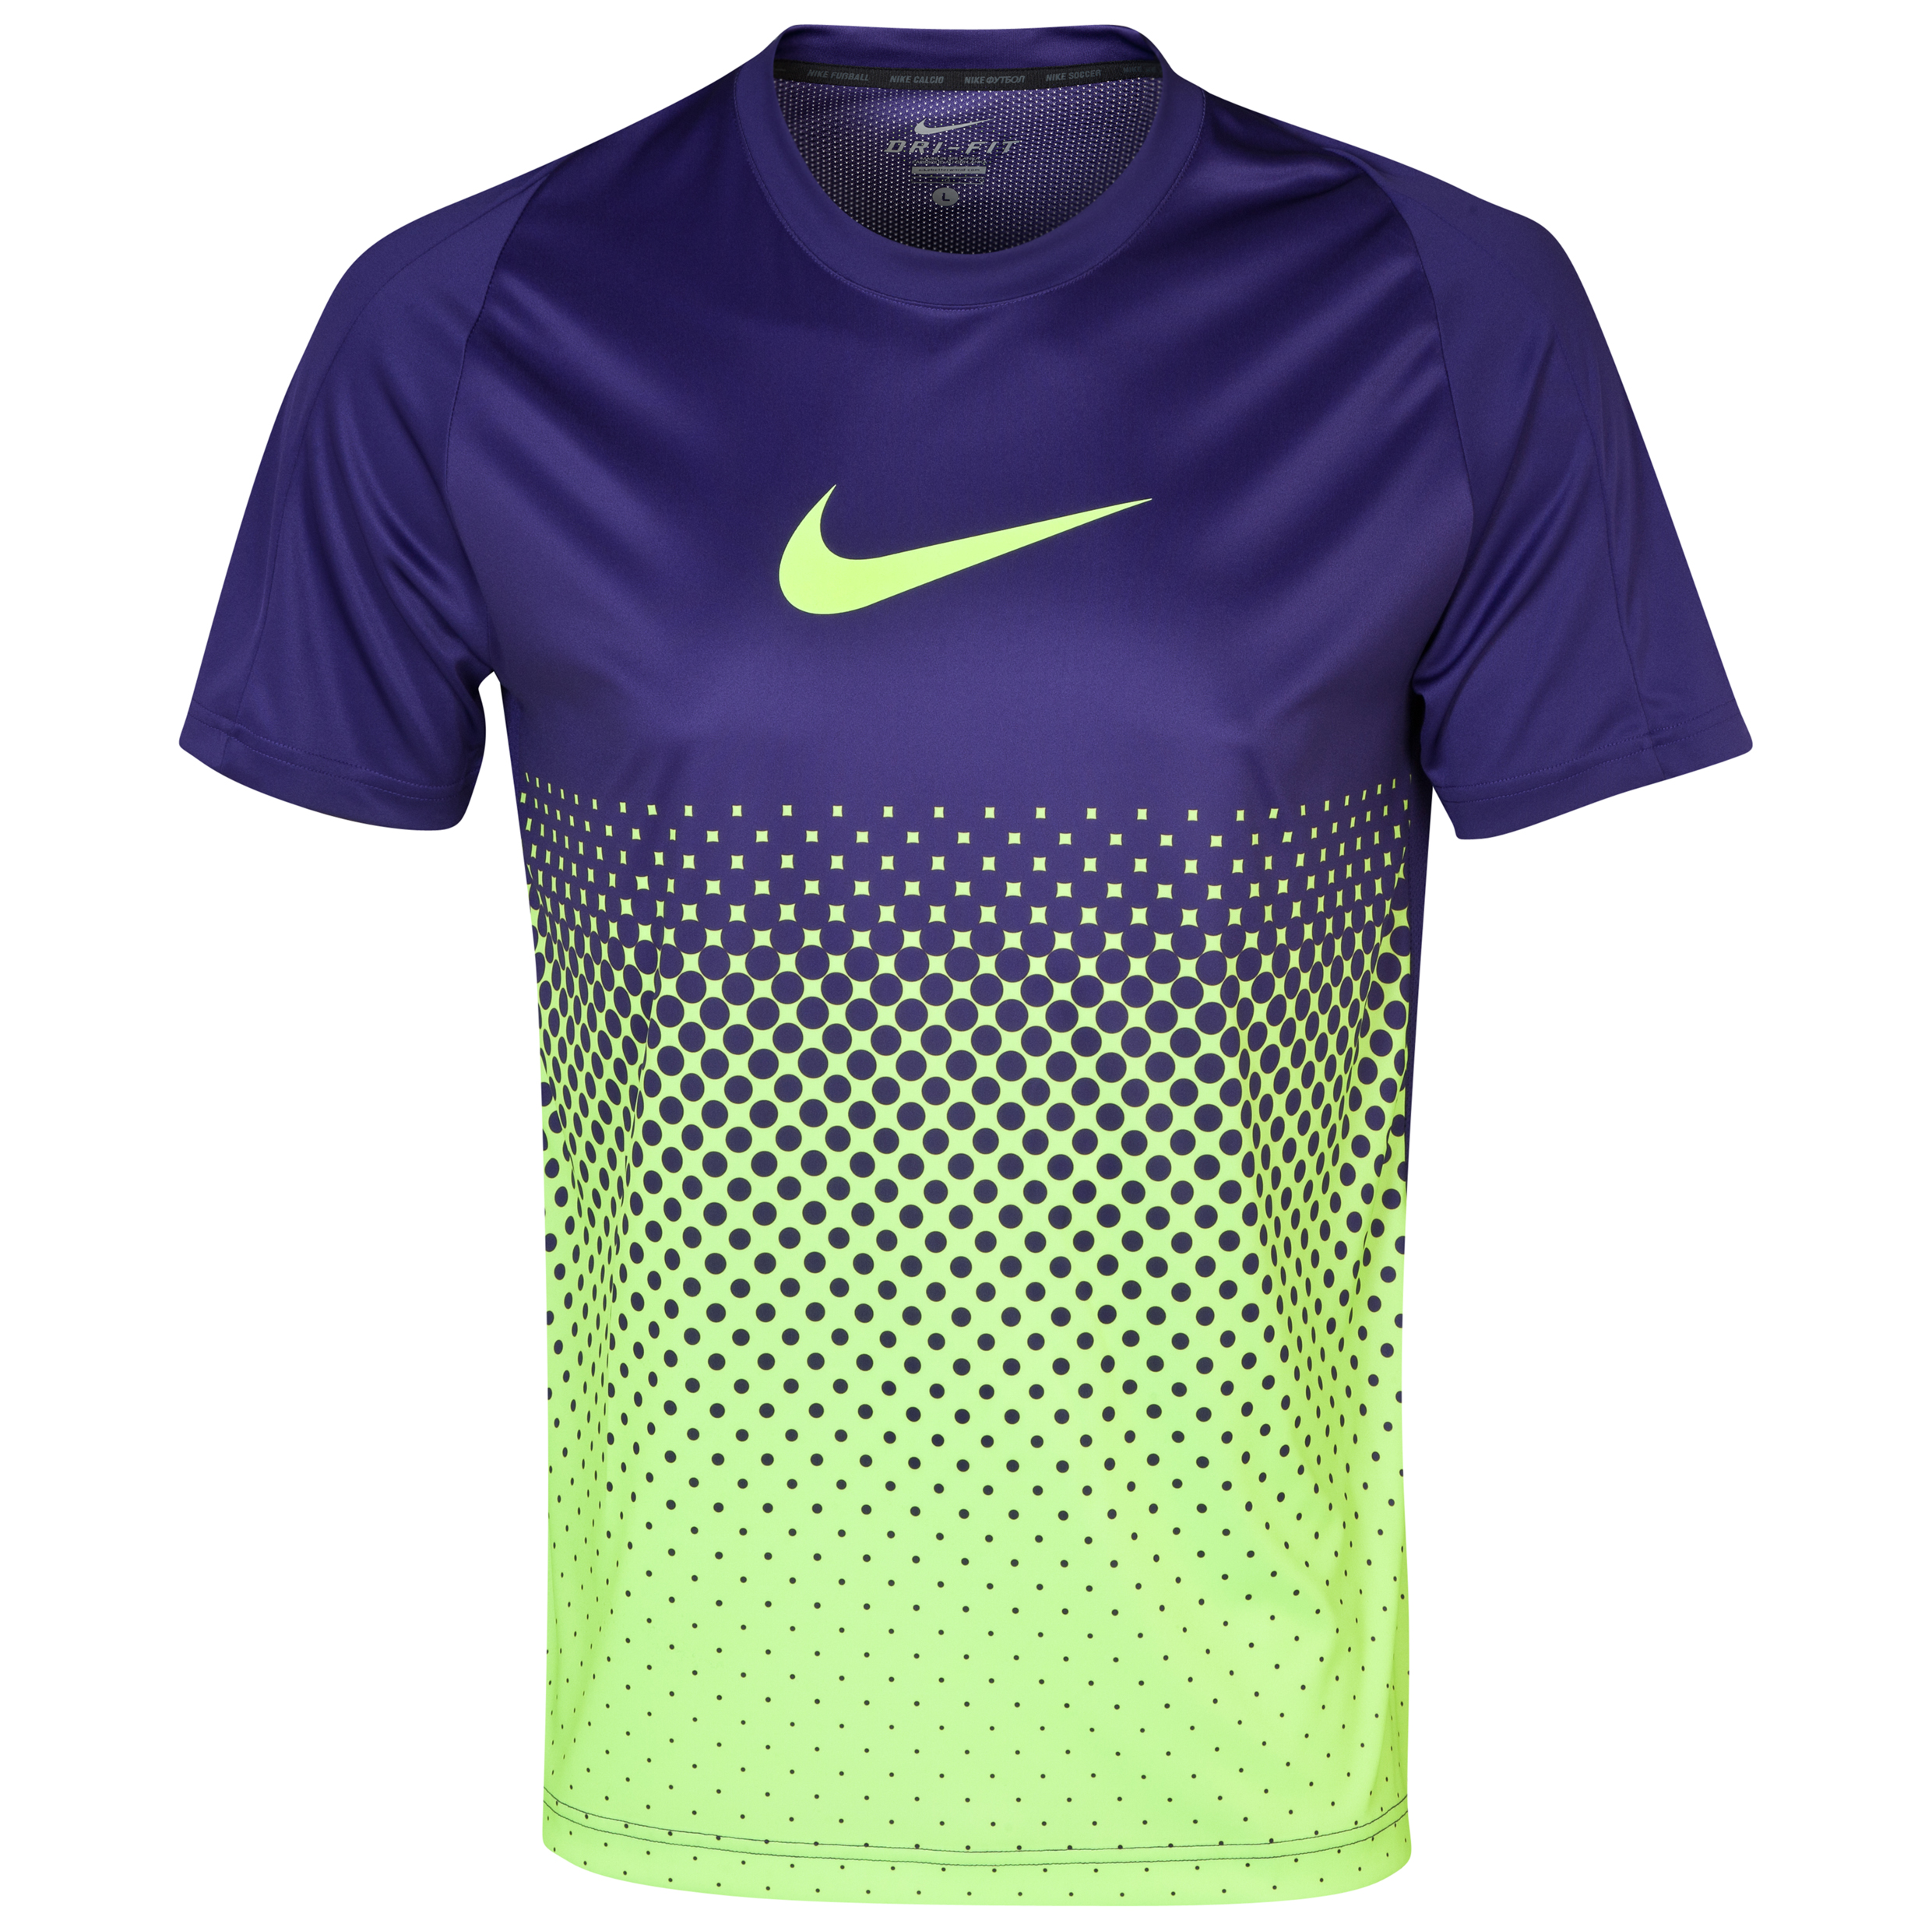 Nike GPX Gradient Training Top - Court Purple/ Volt/Volt Purple